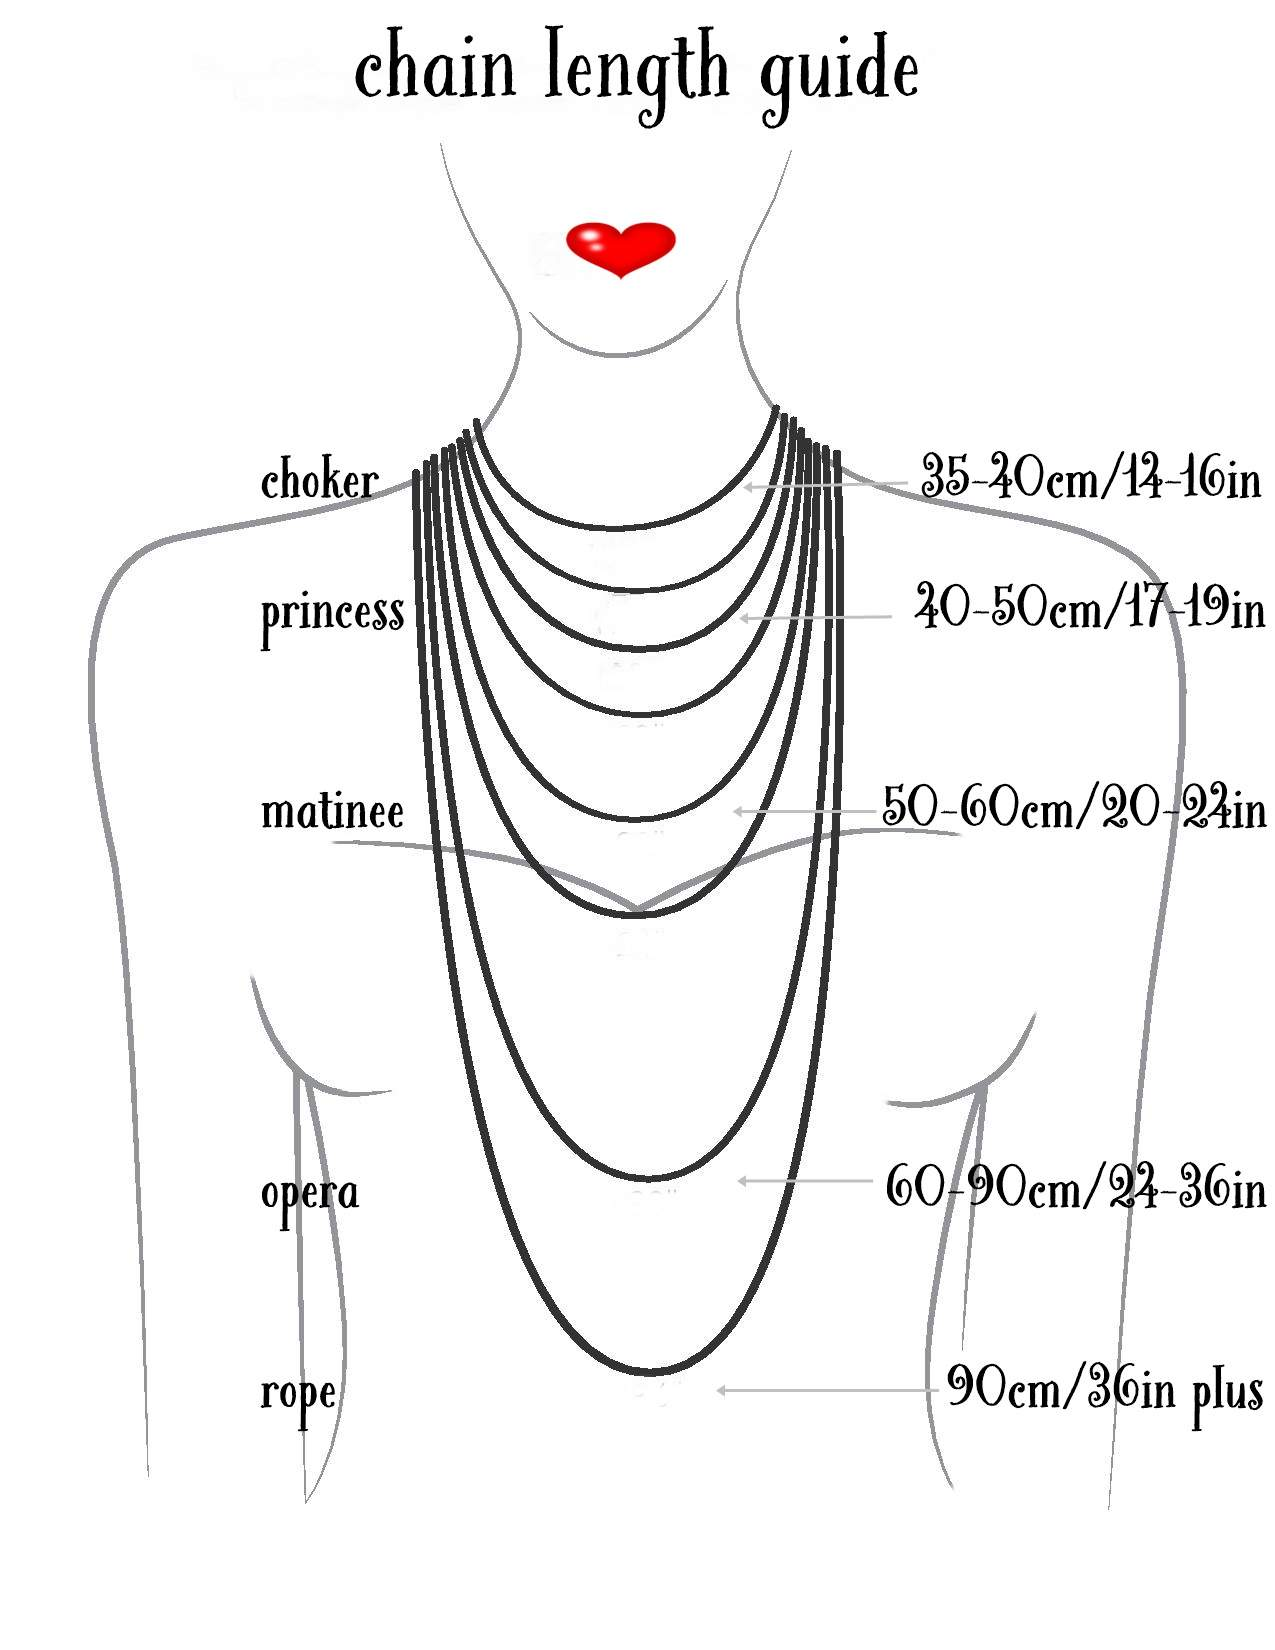 Necklaces Length Guide